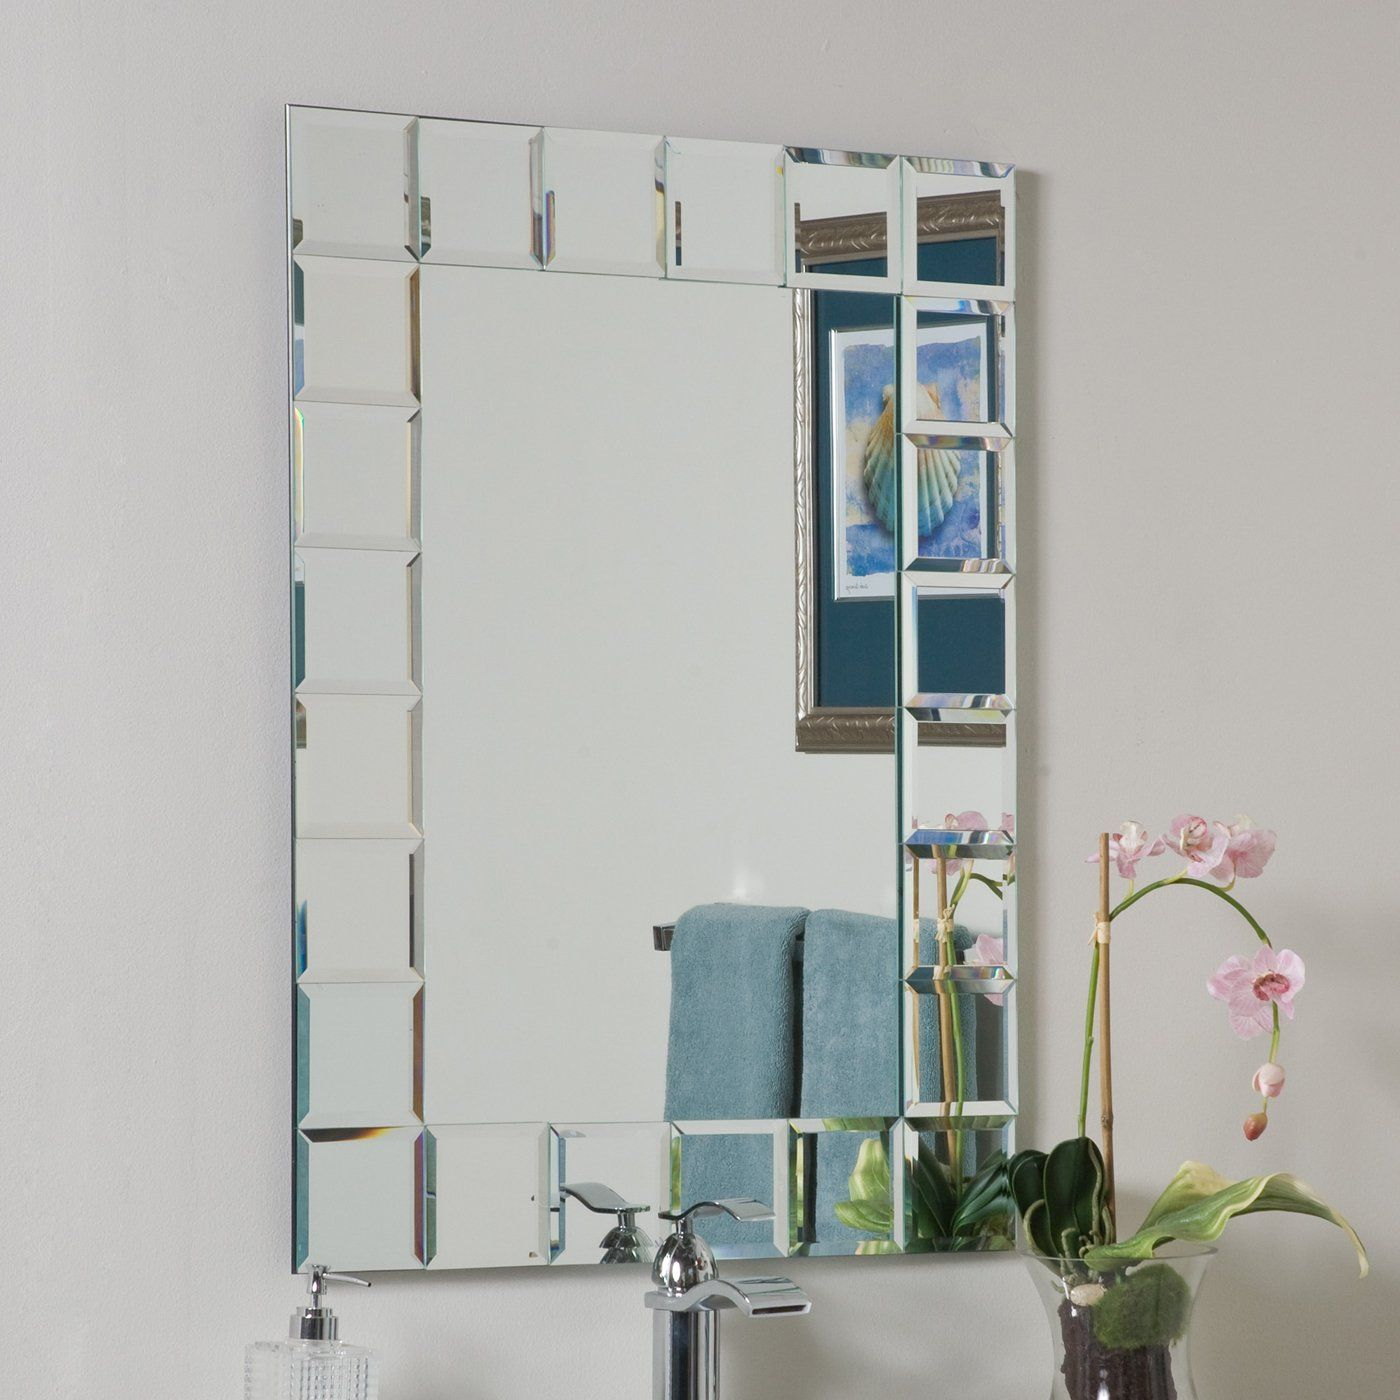 Photo Album Website Decor Wonderland SSM Montreal Modern Bathroom Mirror Lowe us Canada